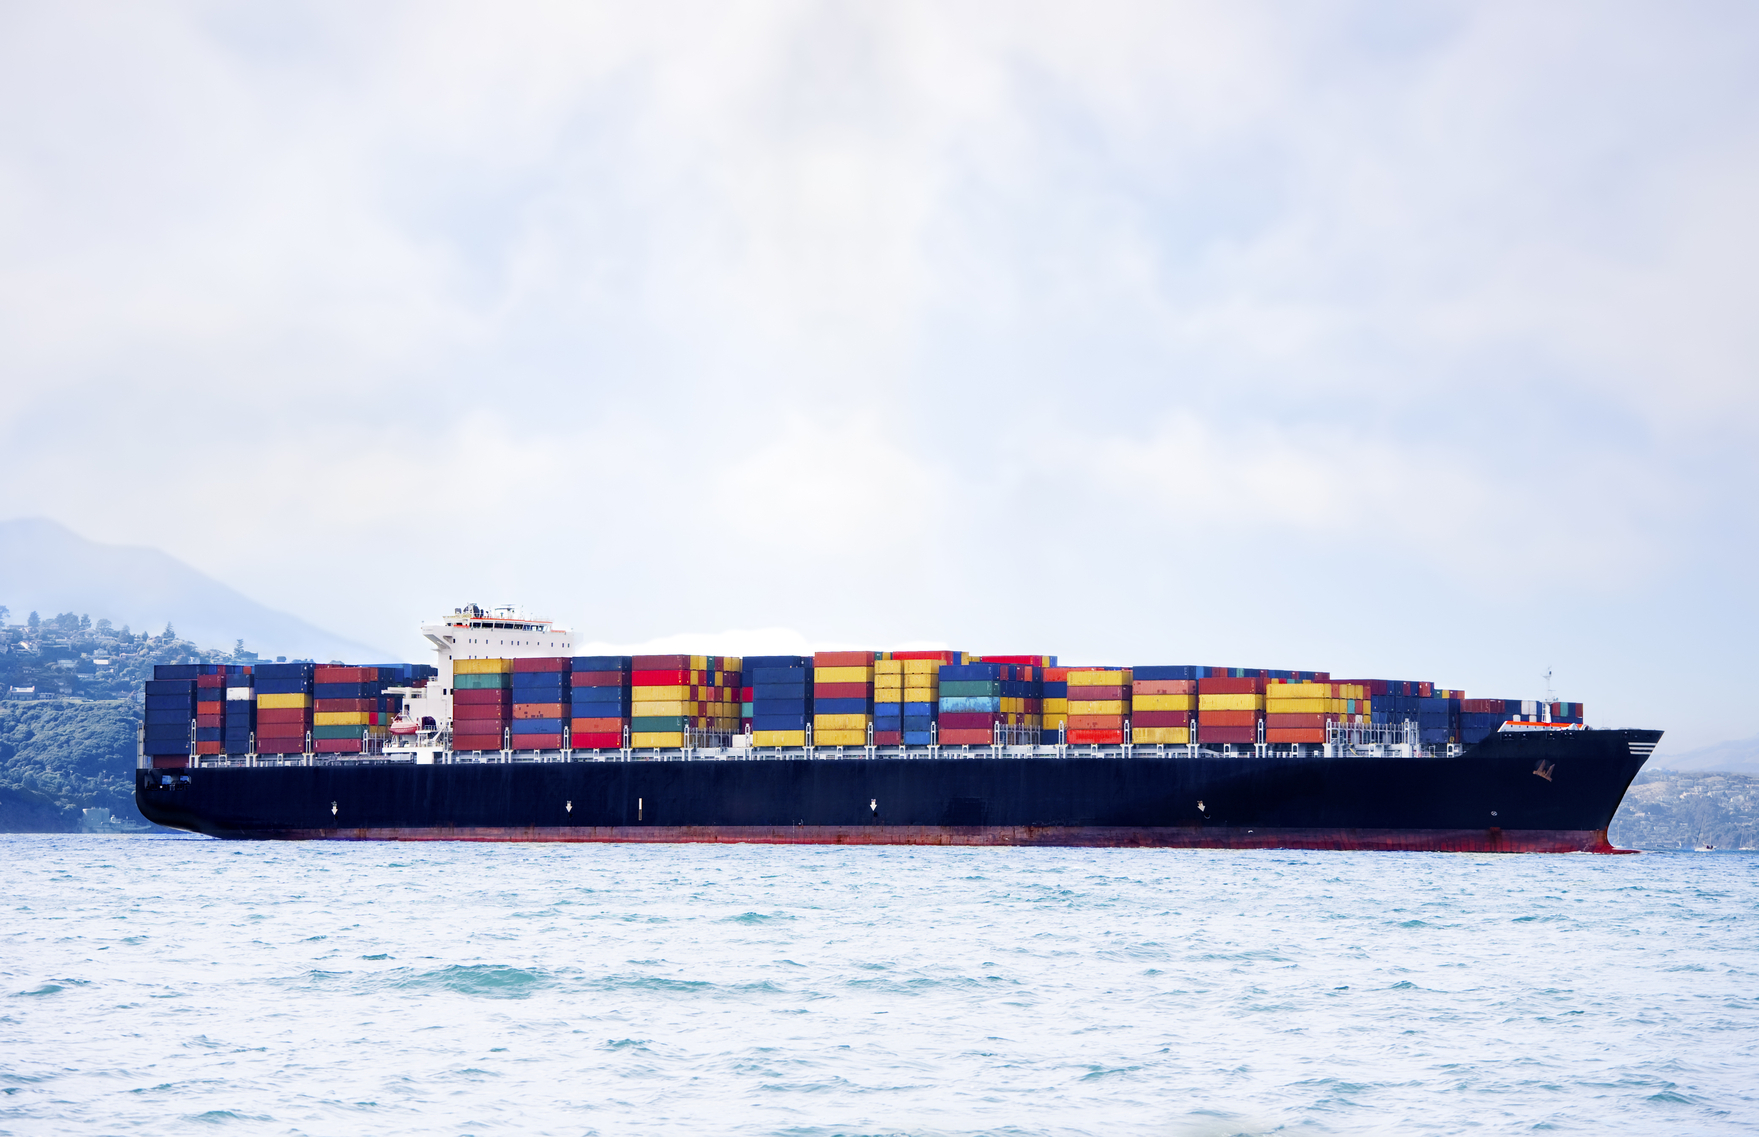 stockfresh_1384280_large-cargo-ship-in-water-carrying-colorful-shipping-containers_sizeM